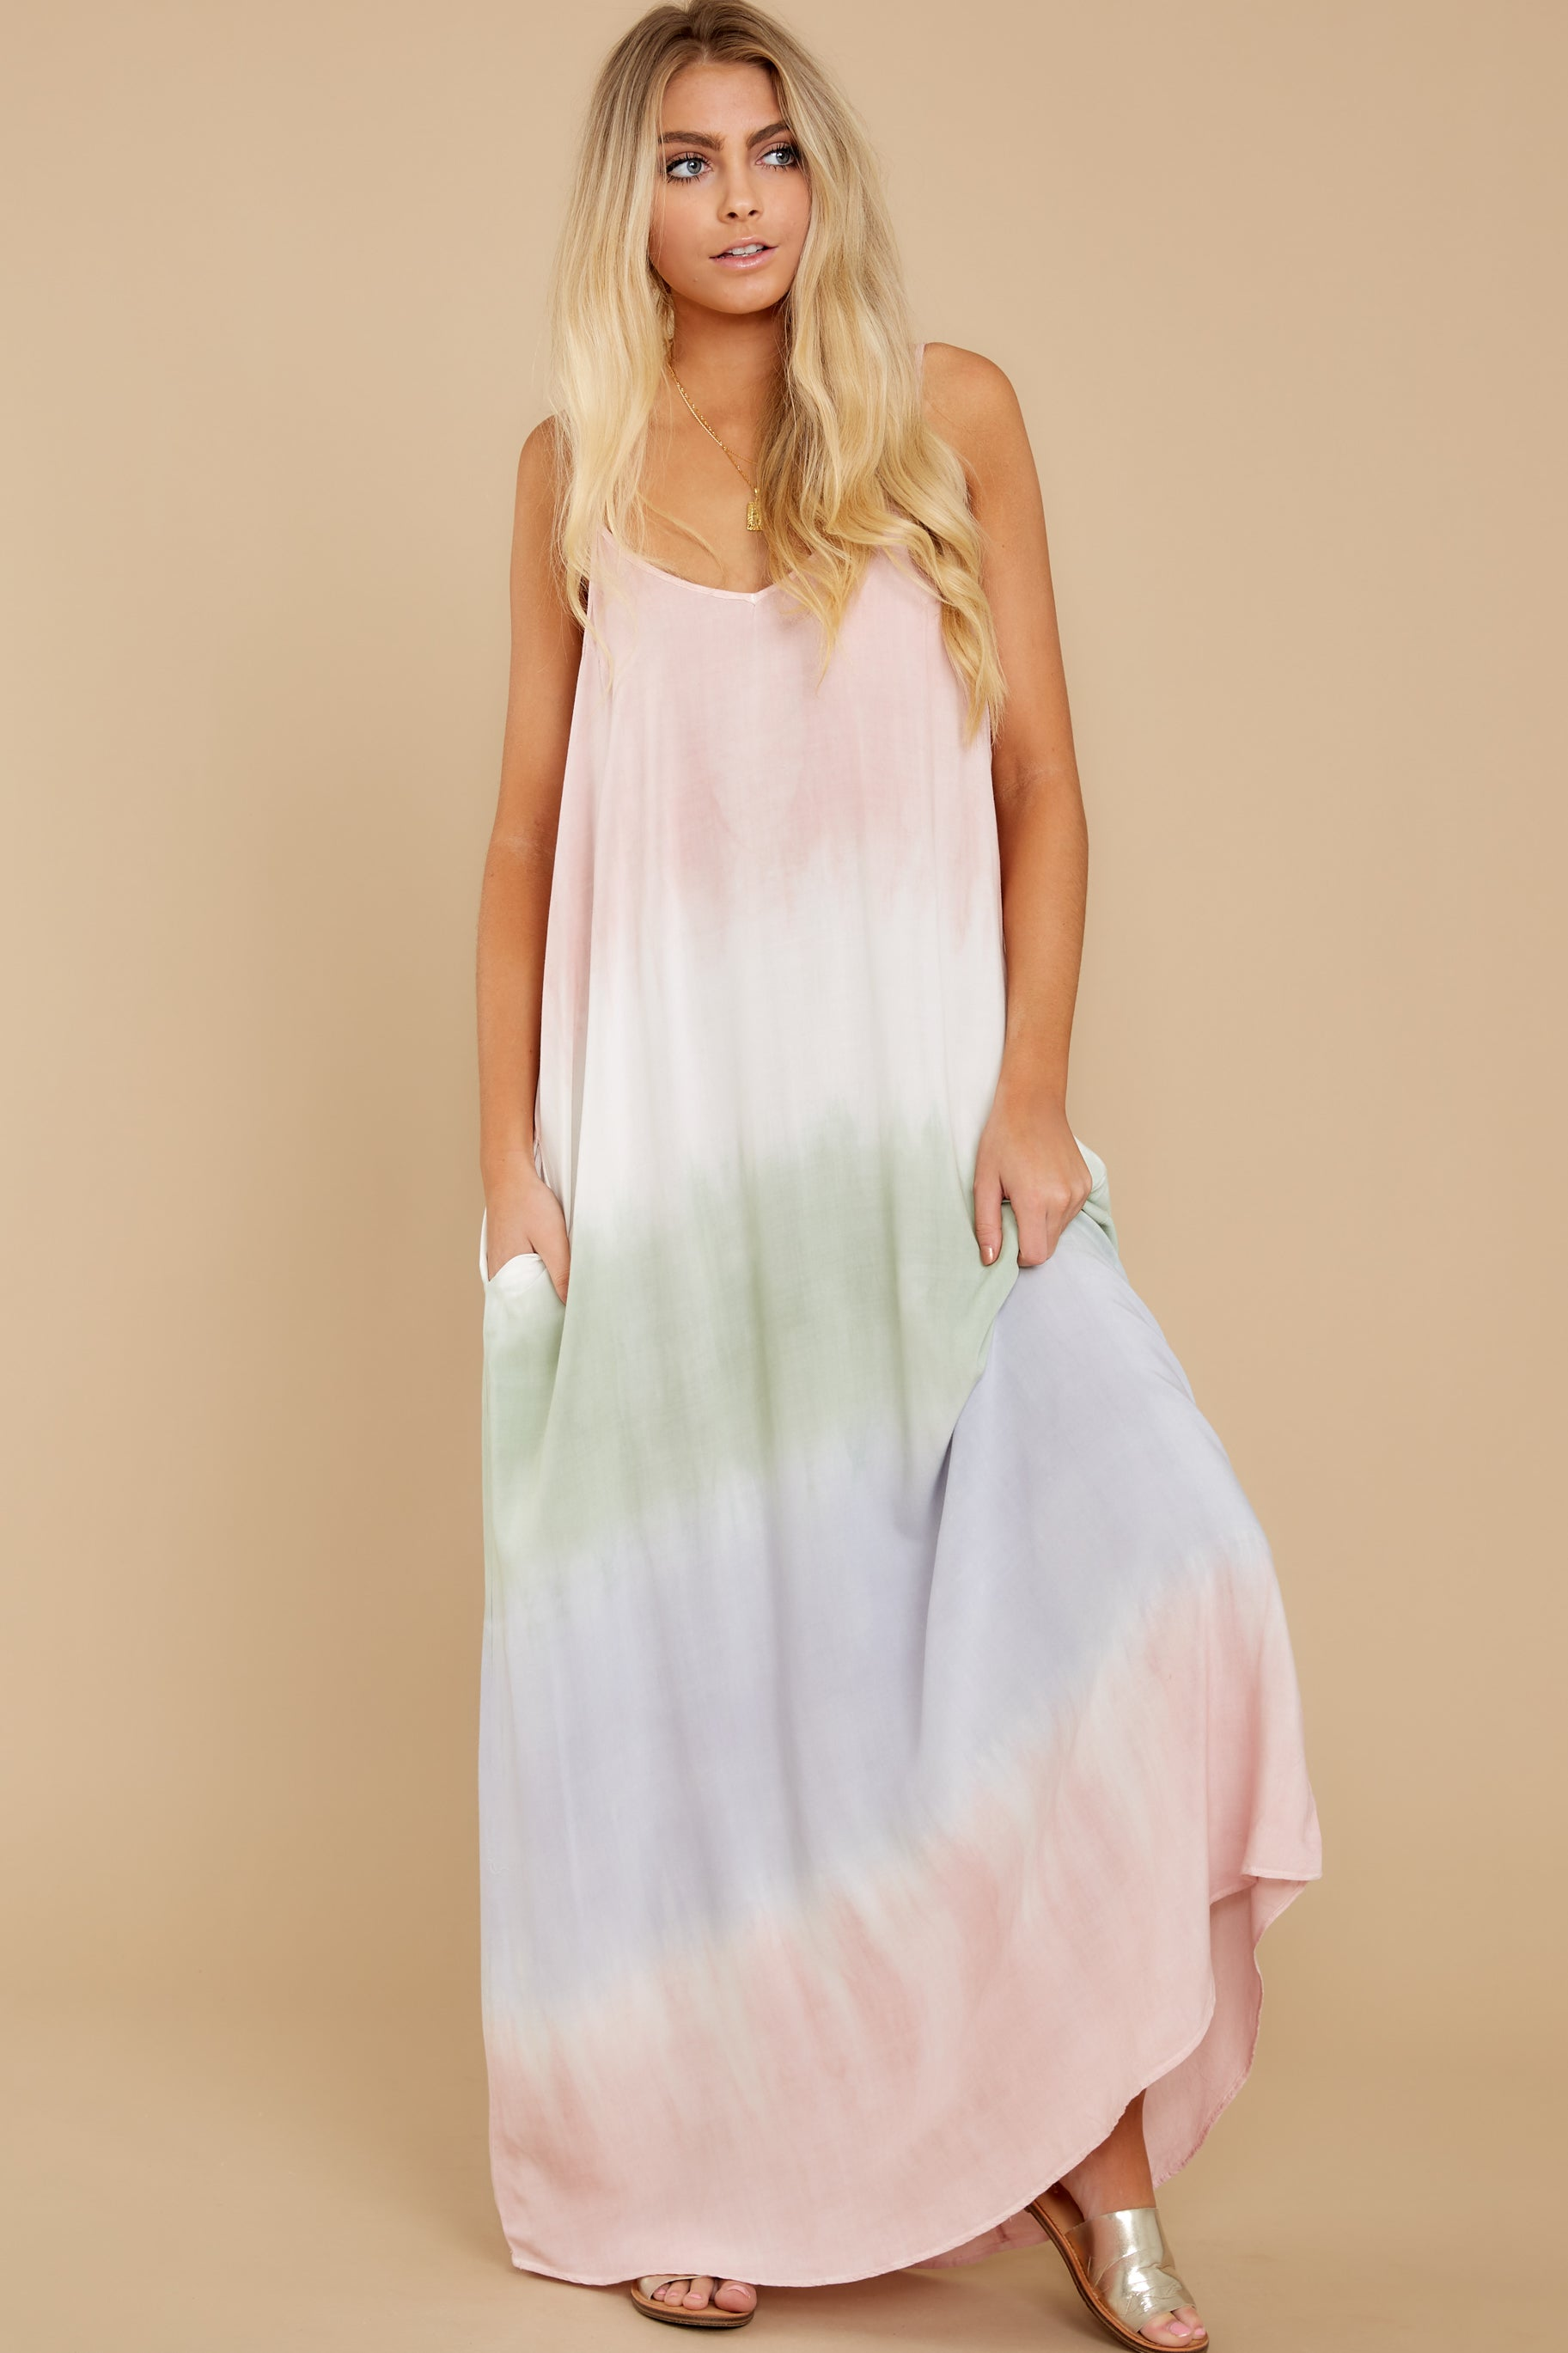 6 All My Love Blush Pink Multi Maxi Dress at reddress.com